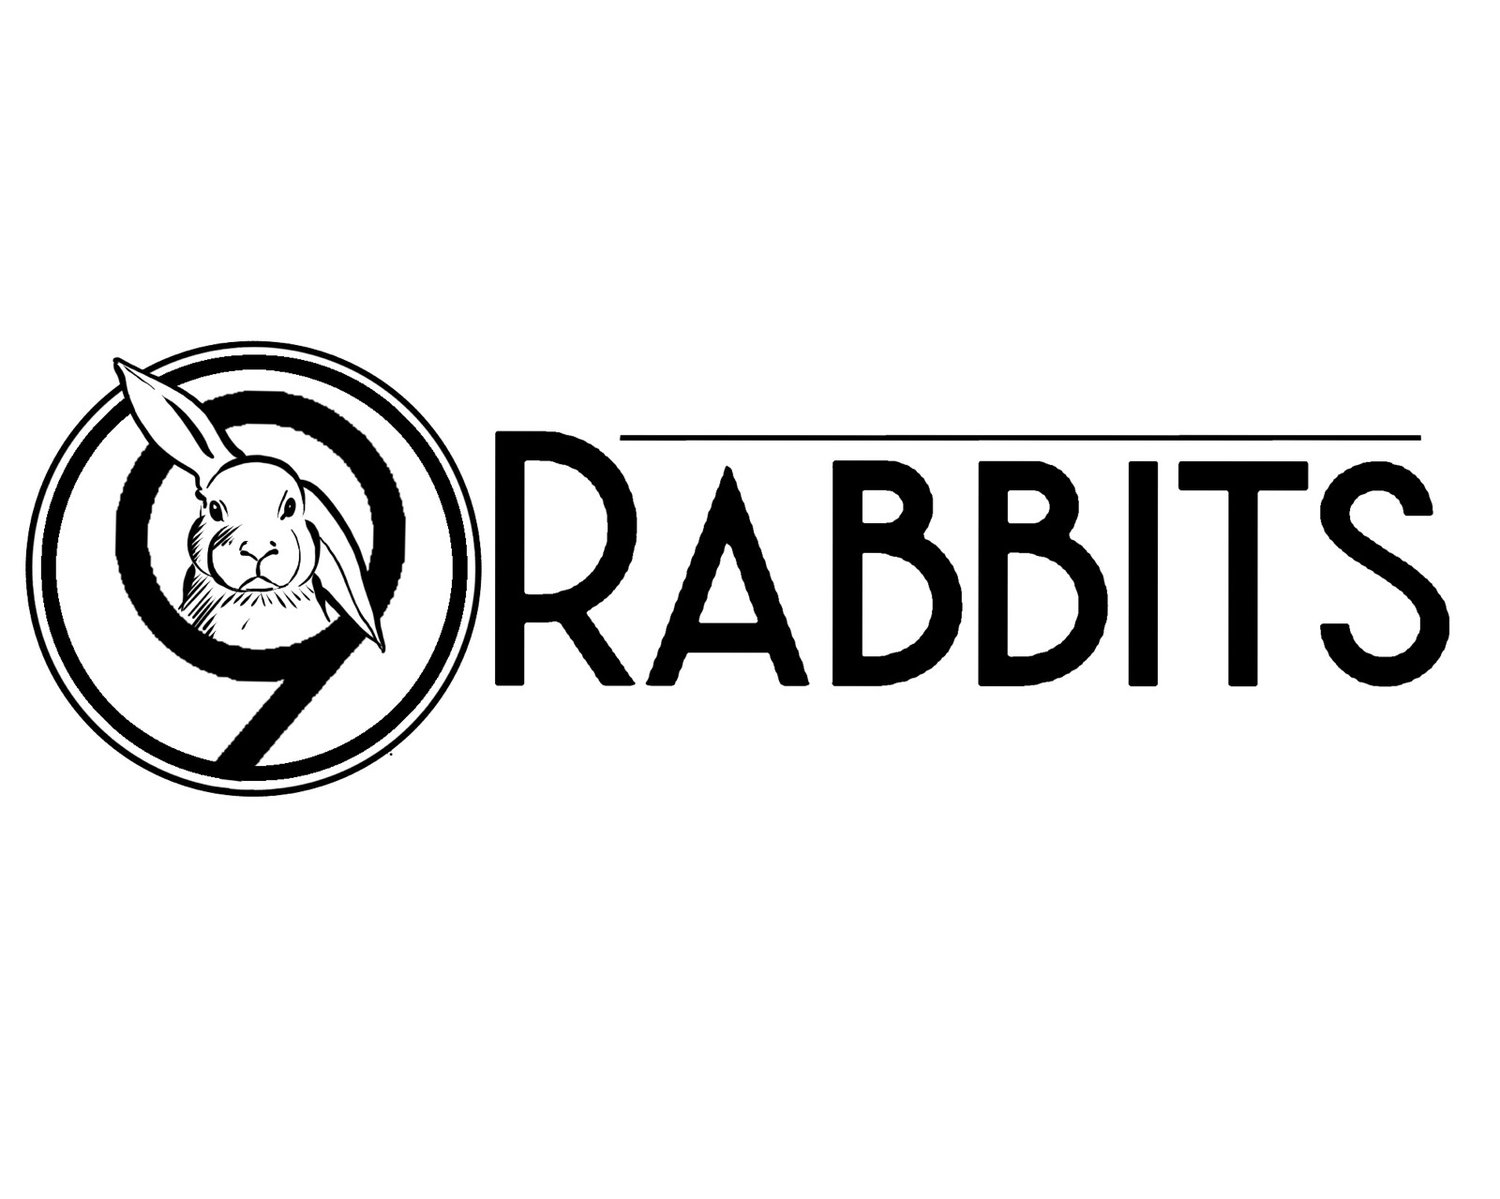 Nine Rabbits